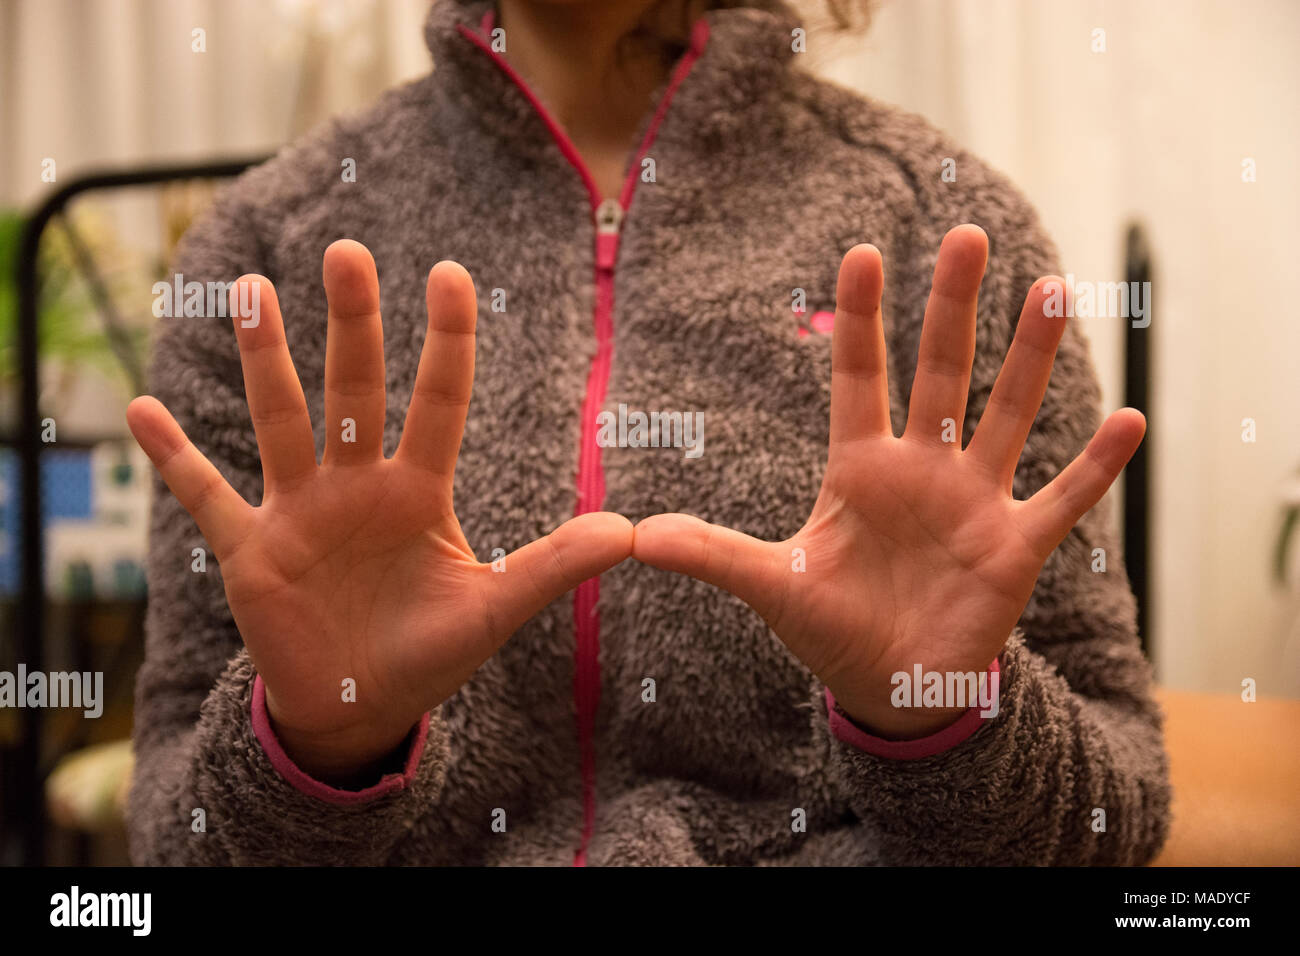 A woman hold her hands placed symmetrically in front of the camera. - Stock Image